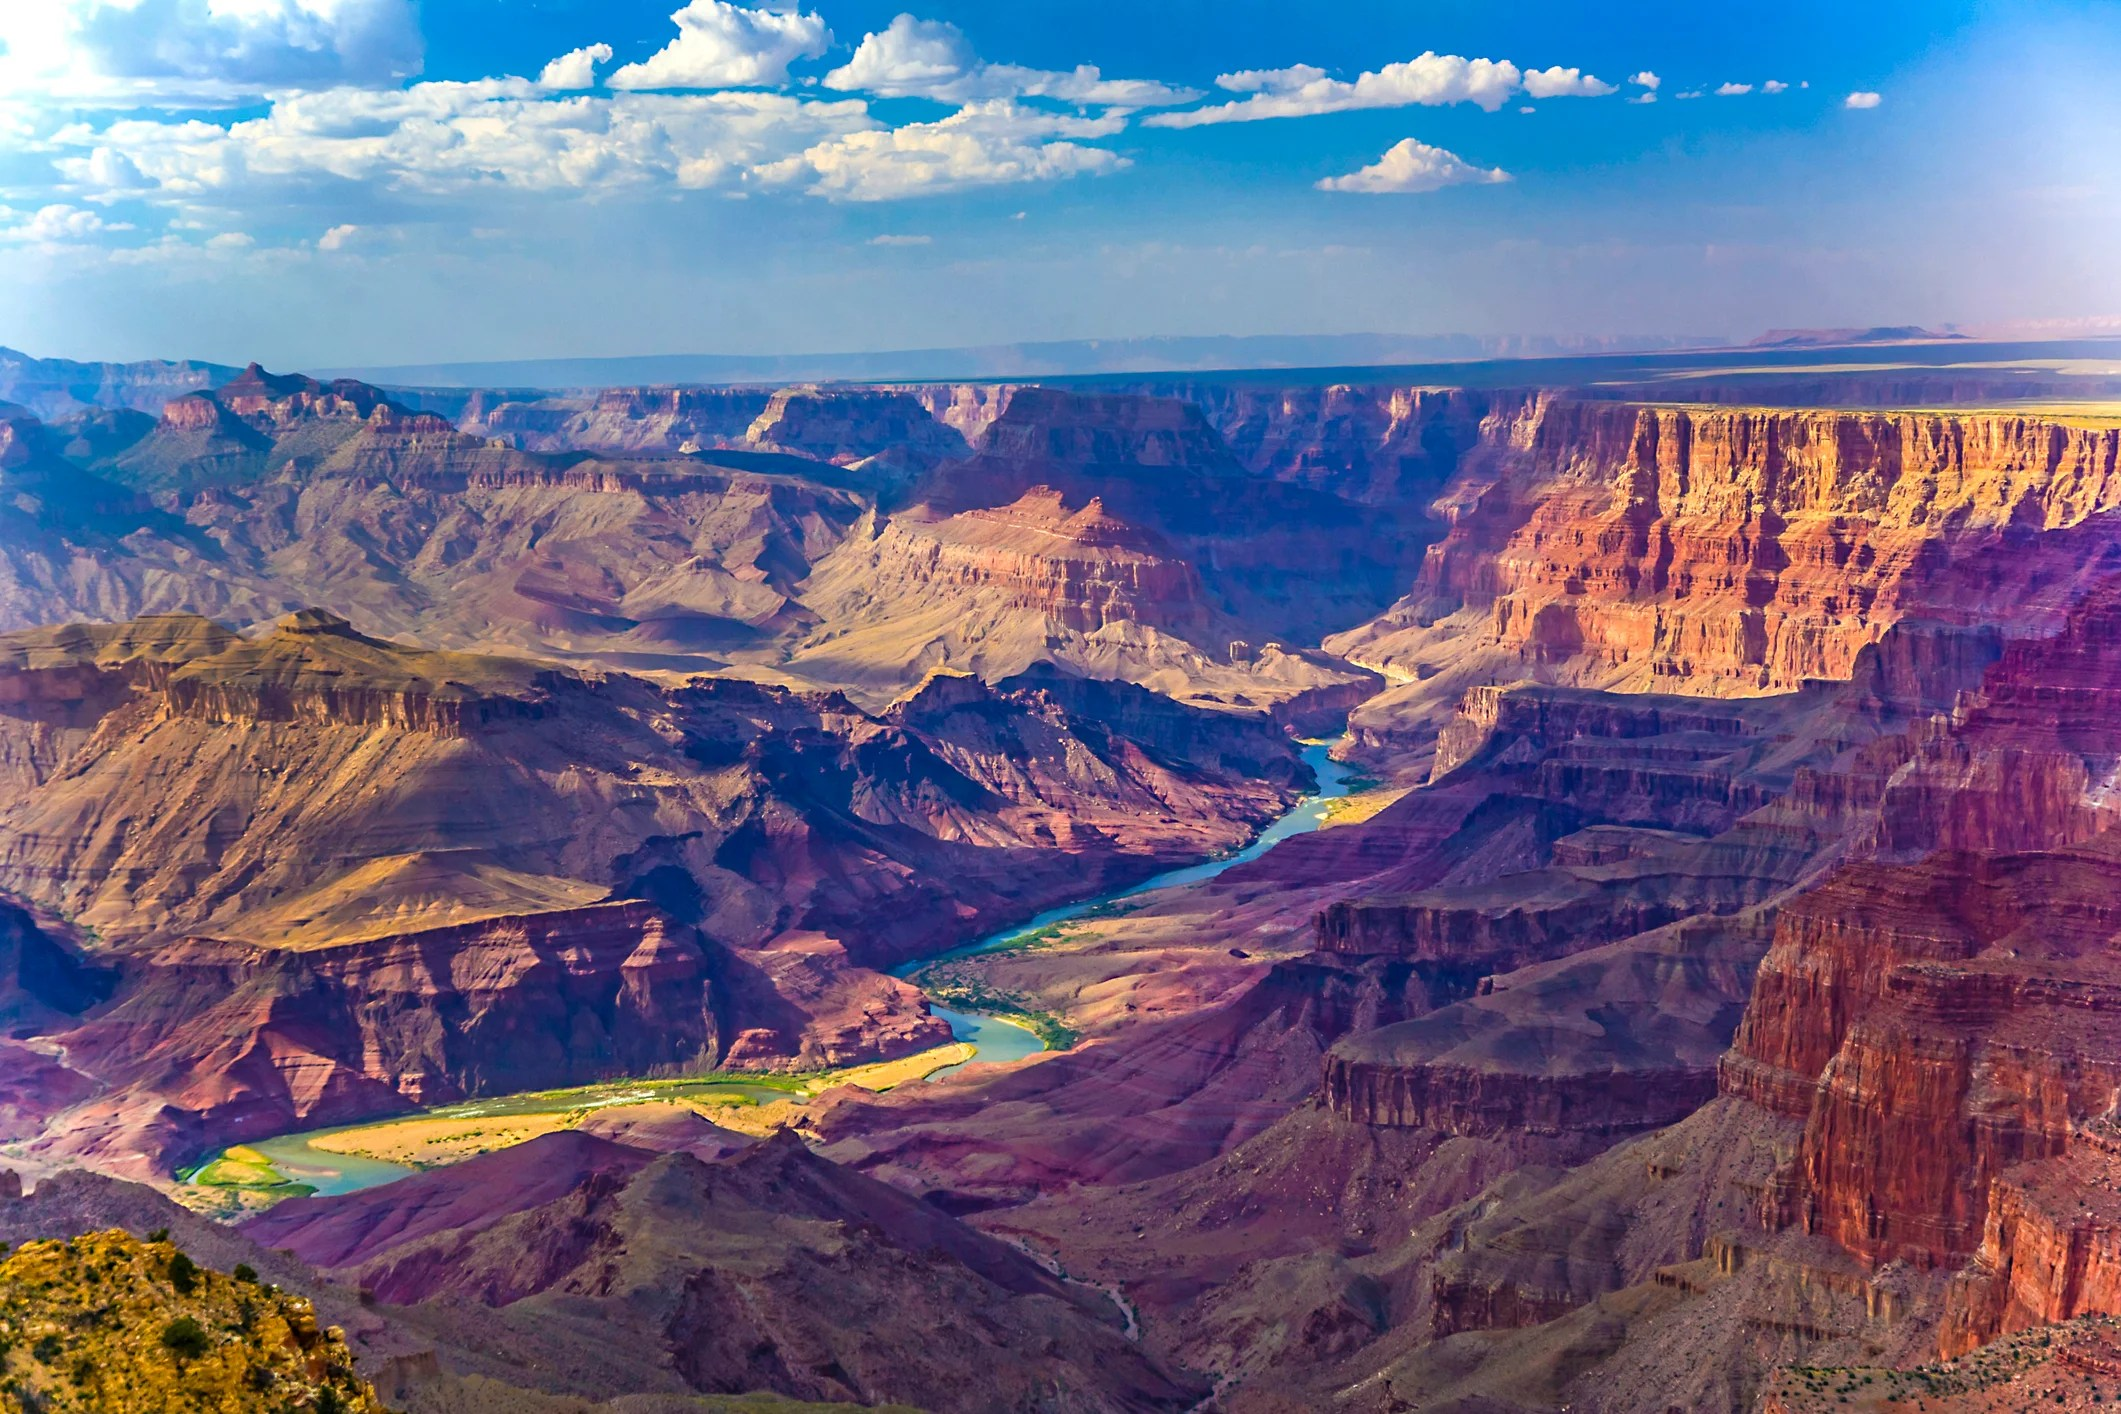 Grand canyon at sunrise with river Colorado. (Photo by Meinzahn/Getty Images)